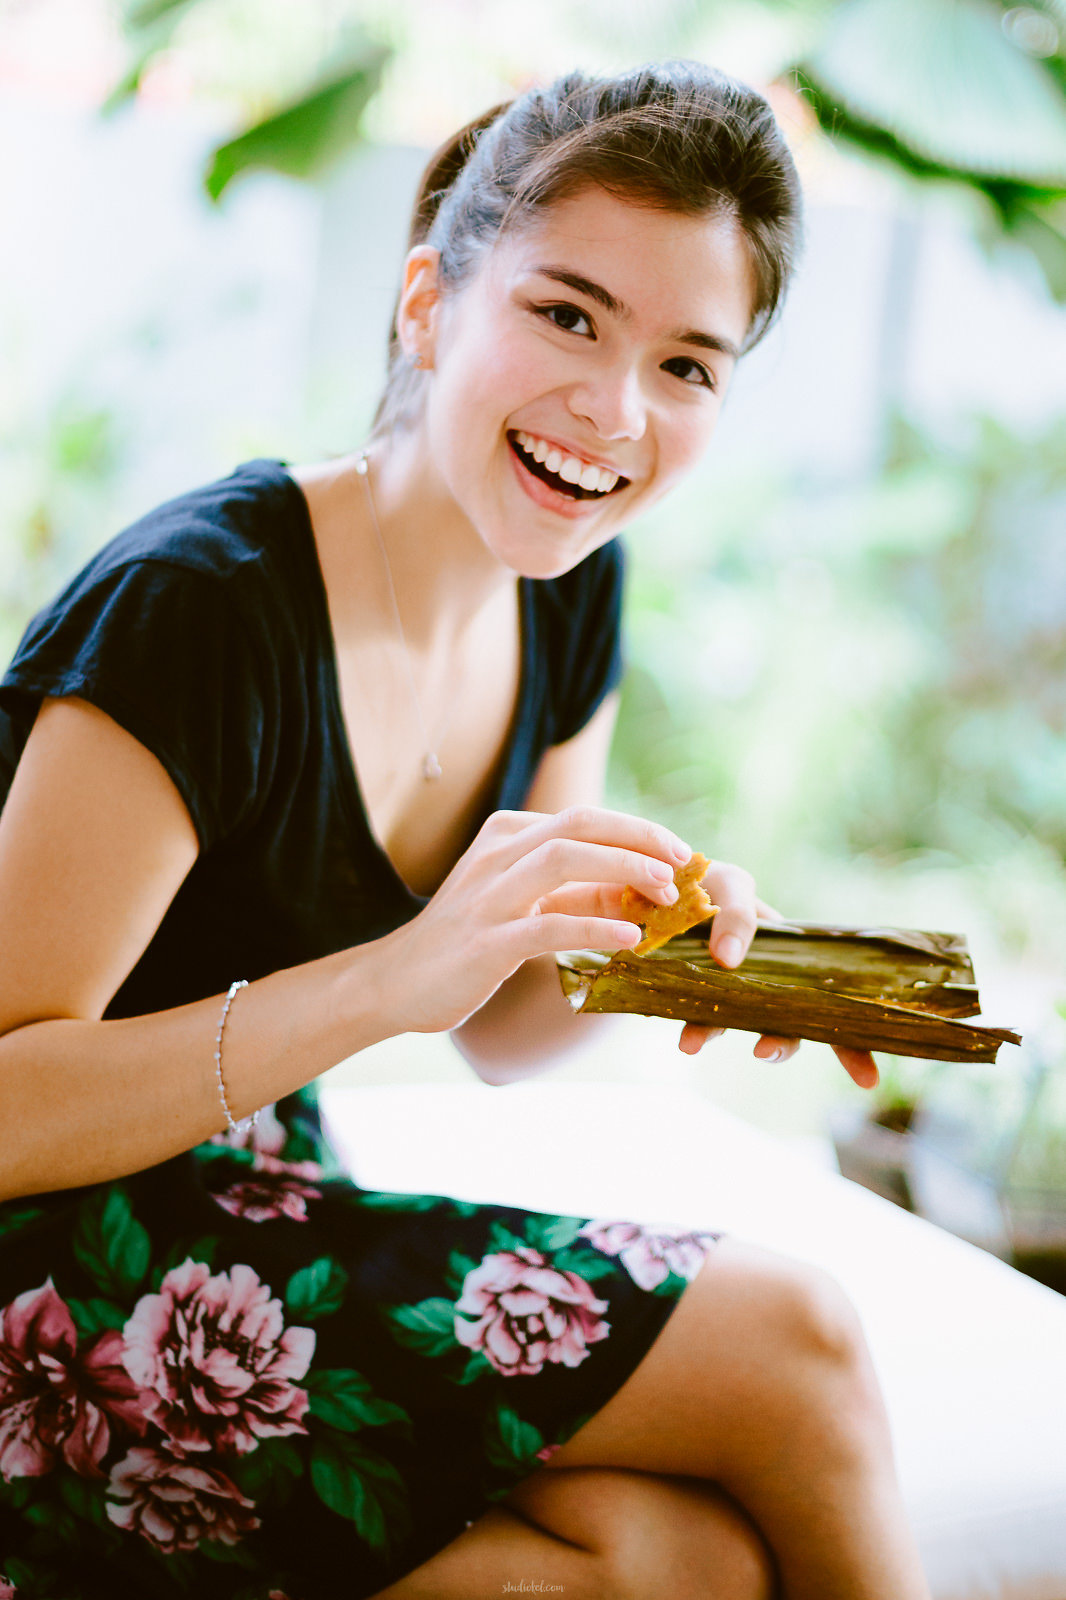 Charlotte de Drouas Nutritionist Healthy Nutritious Cooking for the Family